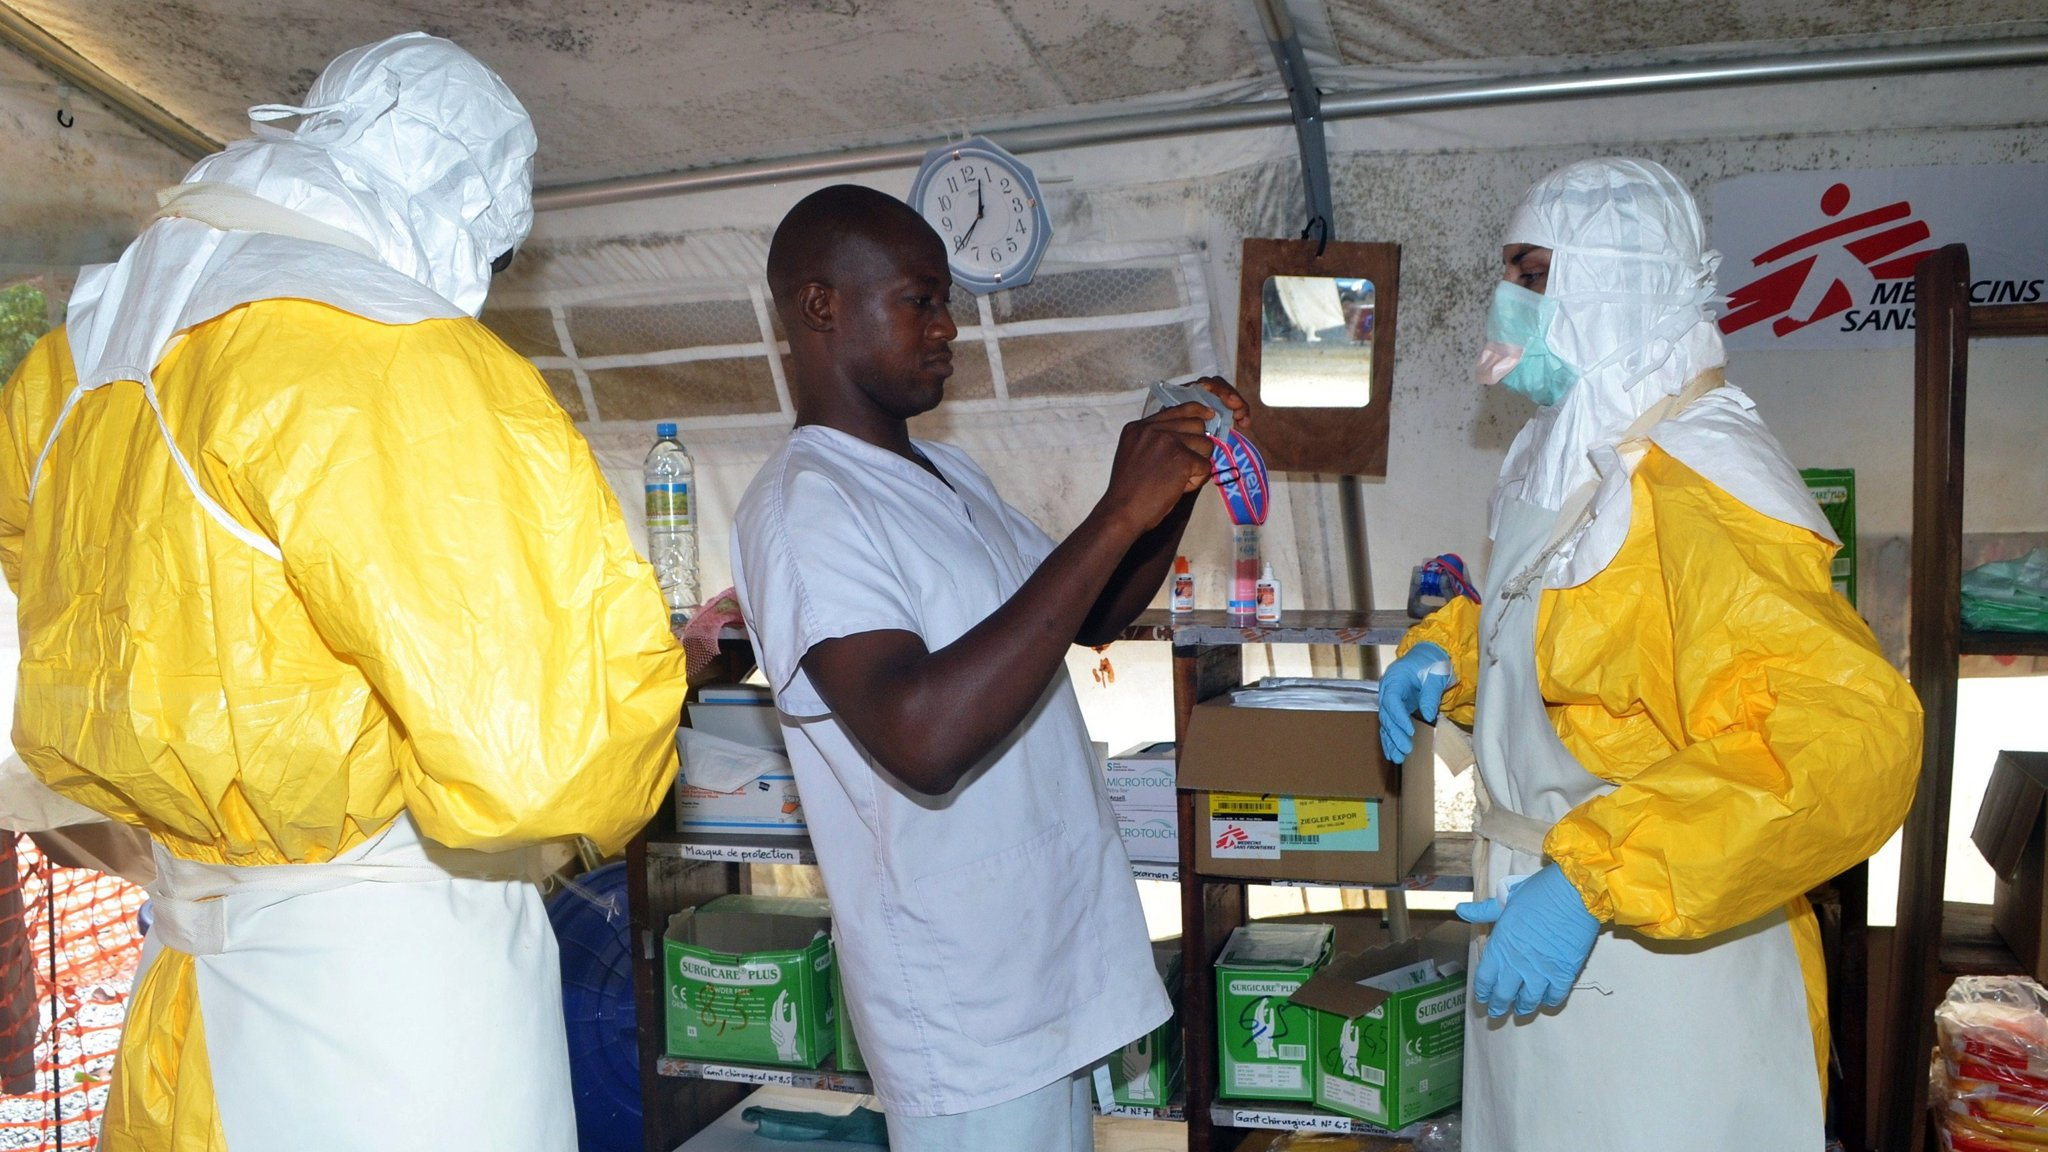 World Bank's 'pandemic bonds' under scrutiny after failing to pay out on Ebola